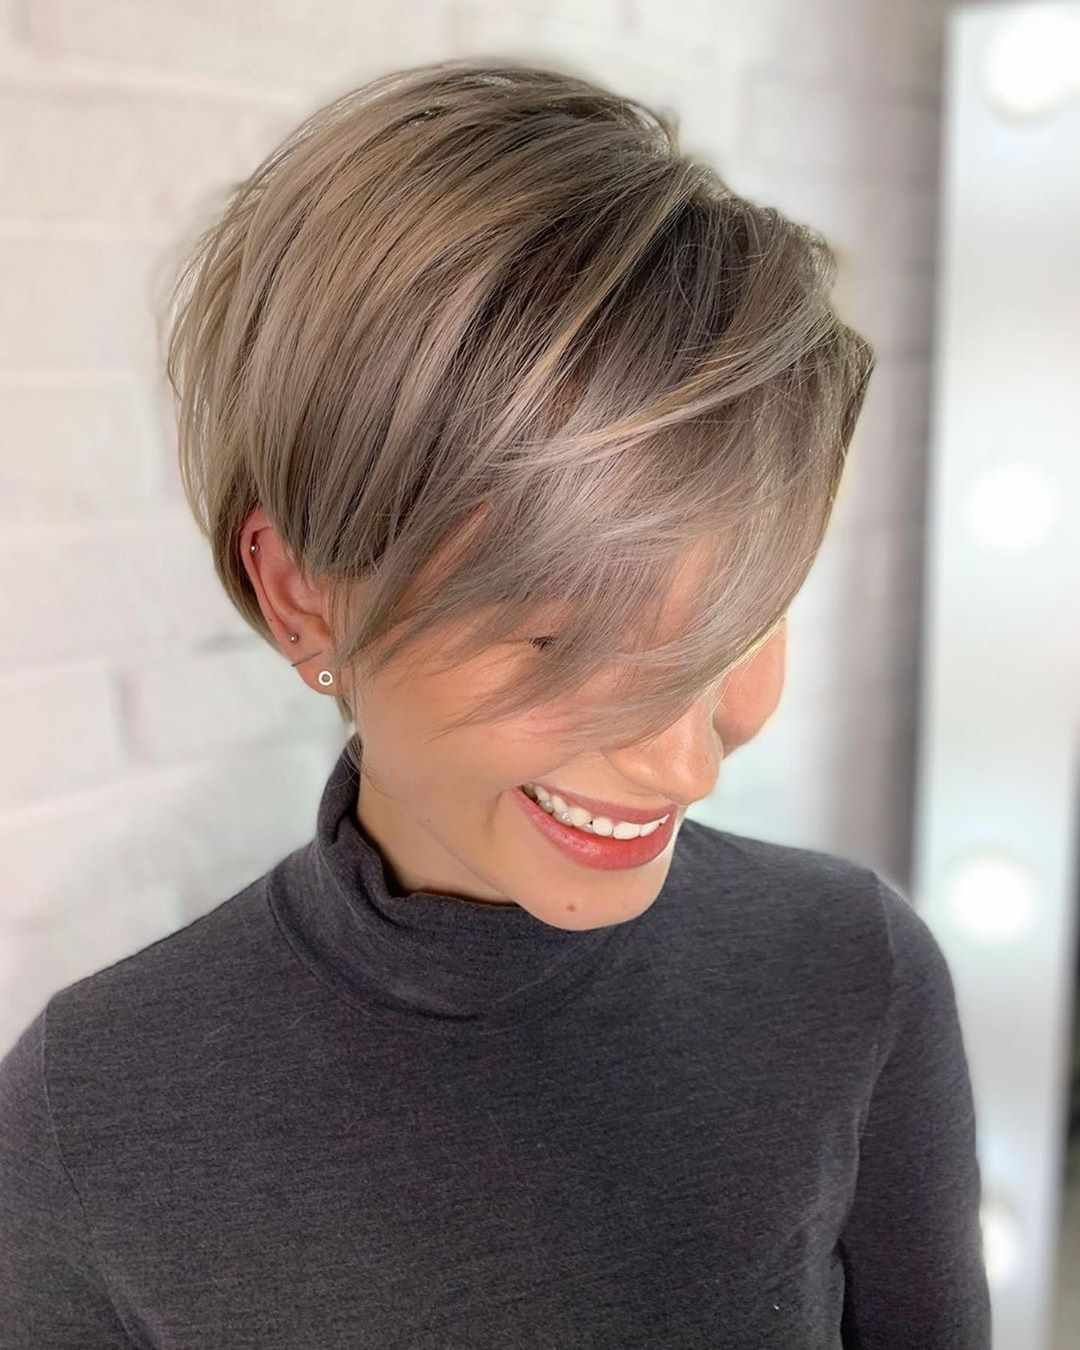 Latest Short Hairstyles For Winter 2020 Latest short